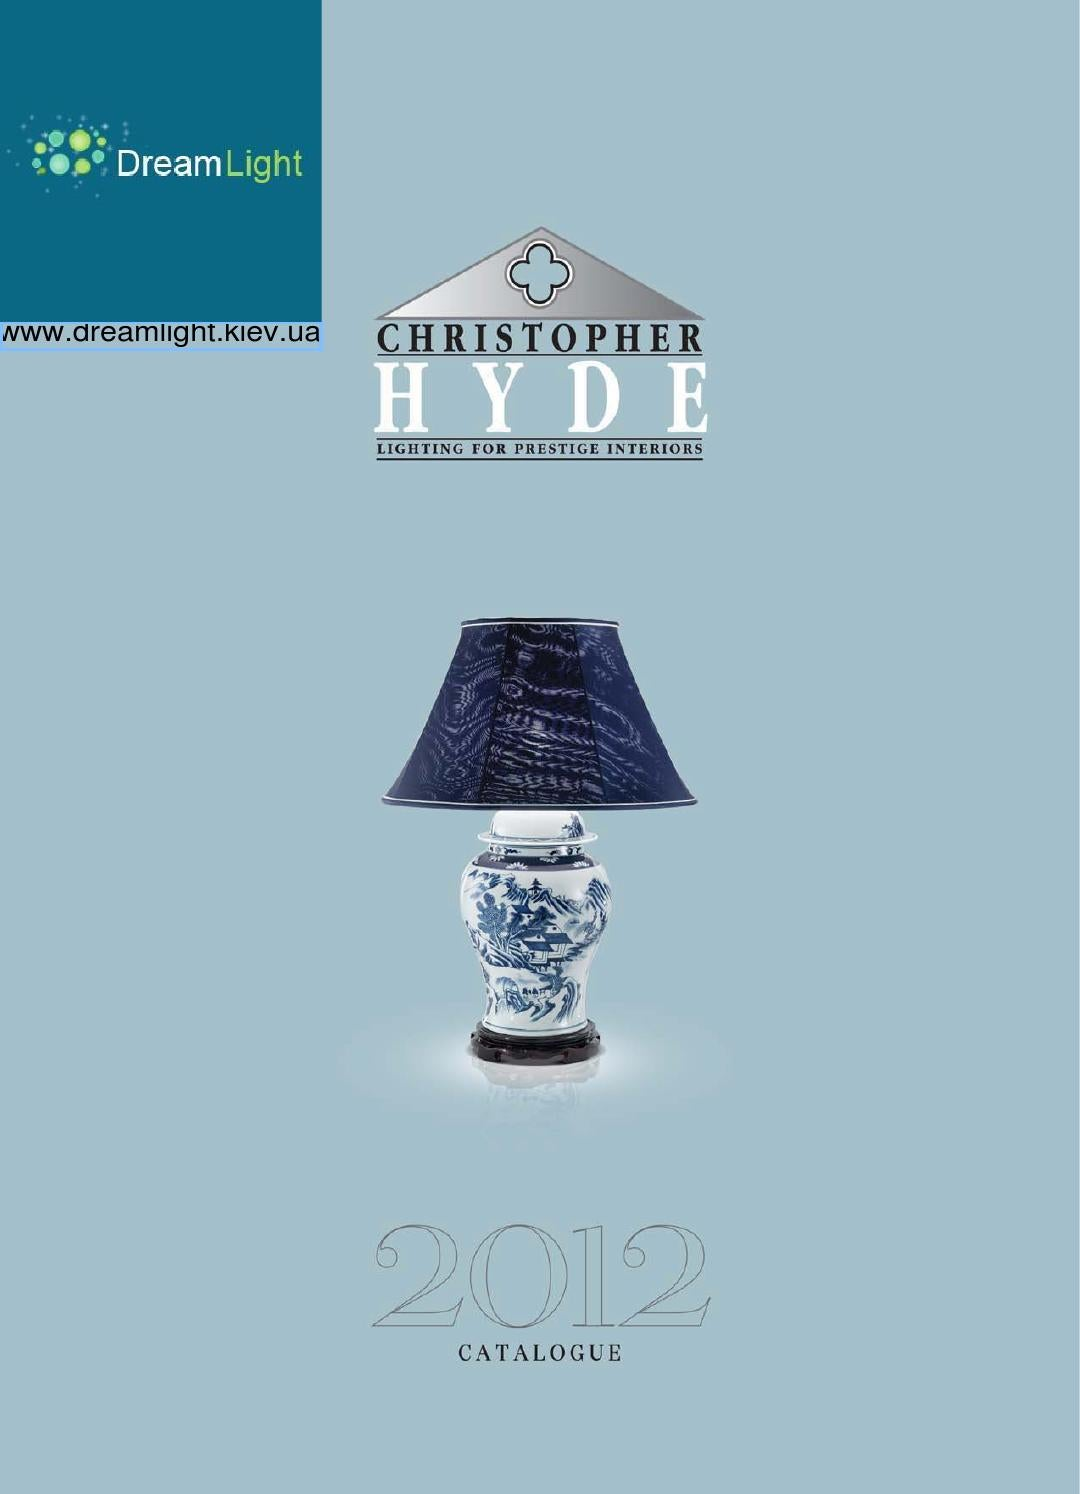 Christopher Hyde Brochure 2017 By Www Dreamlight Kiev Ua Issuu